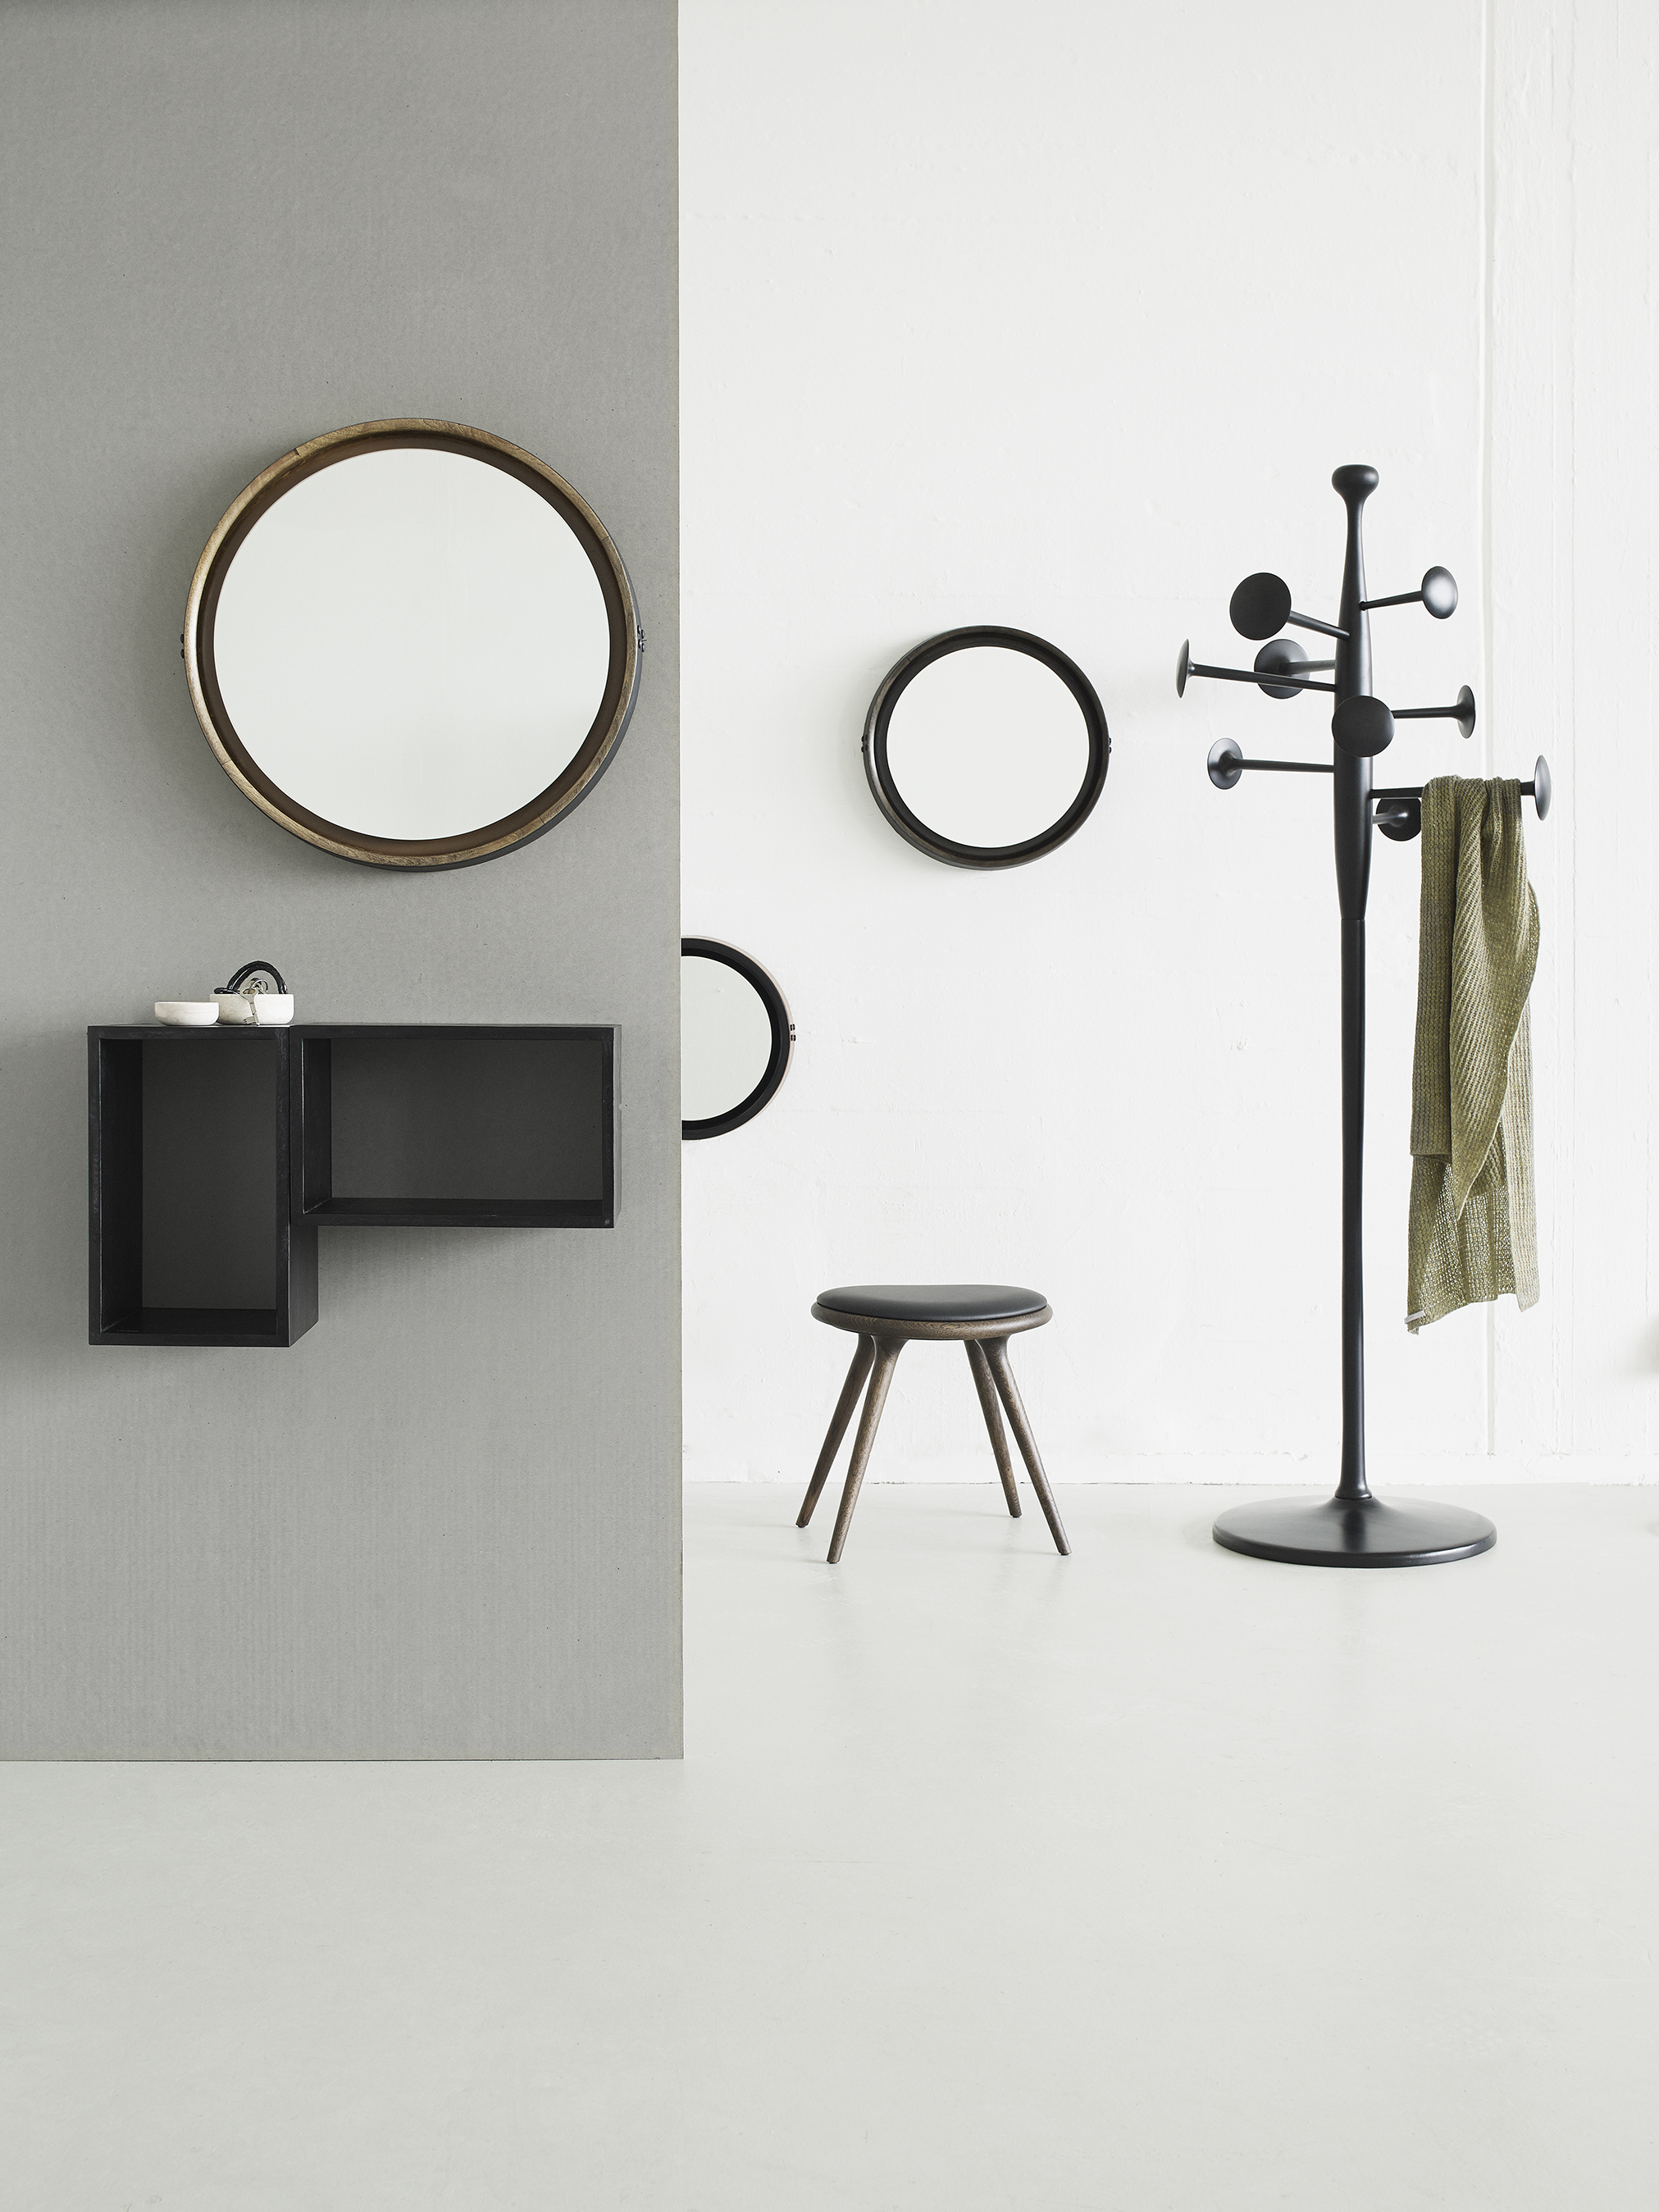 Mater Design Trumpet Coat stand and Sophie Mirror from Mater Design